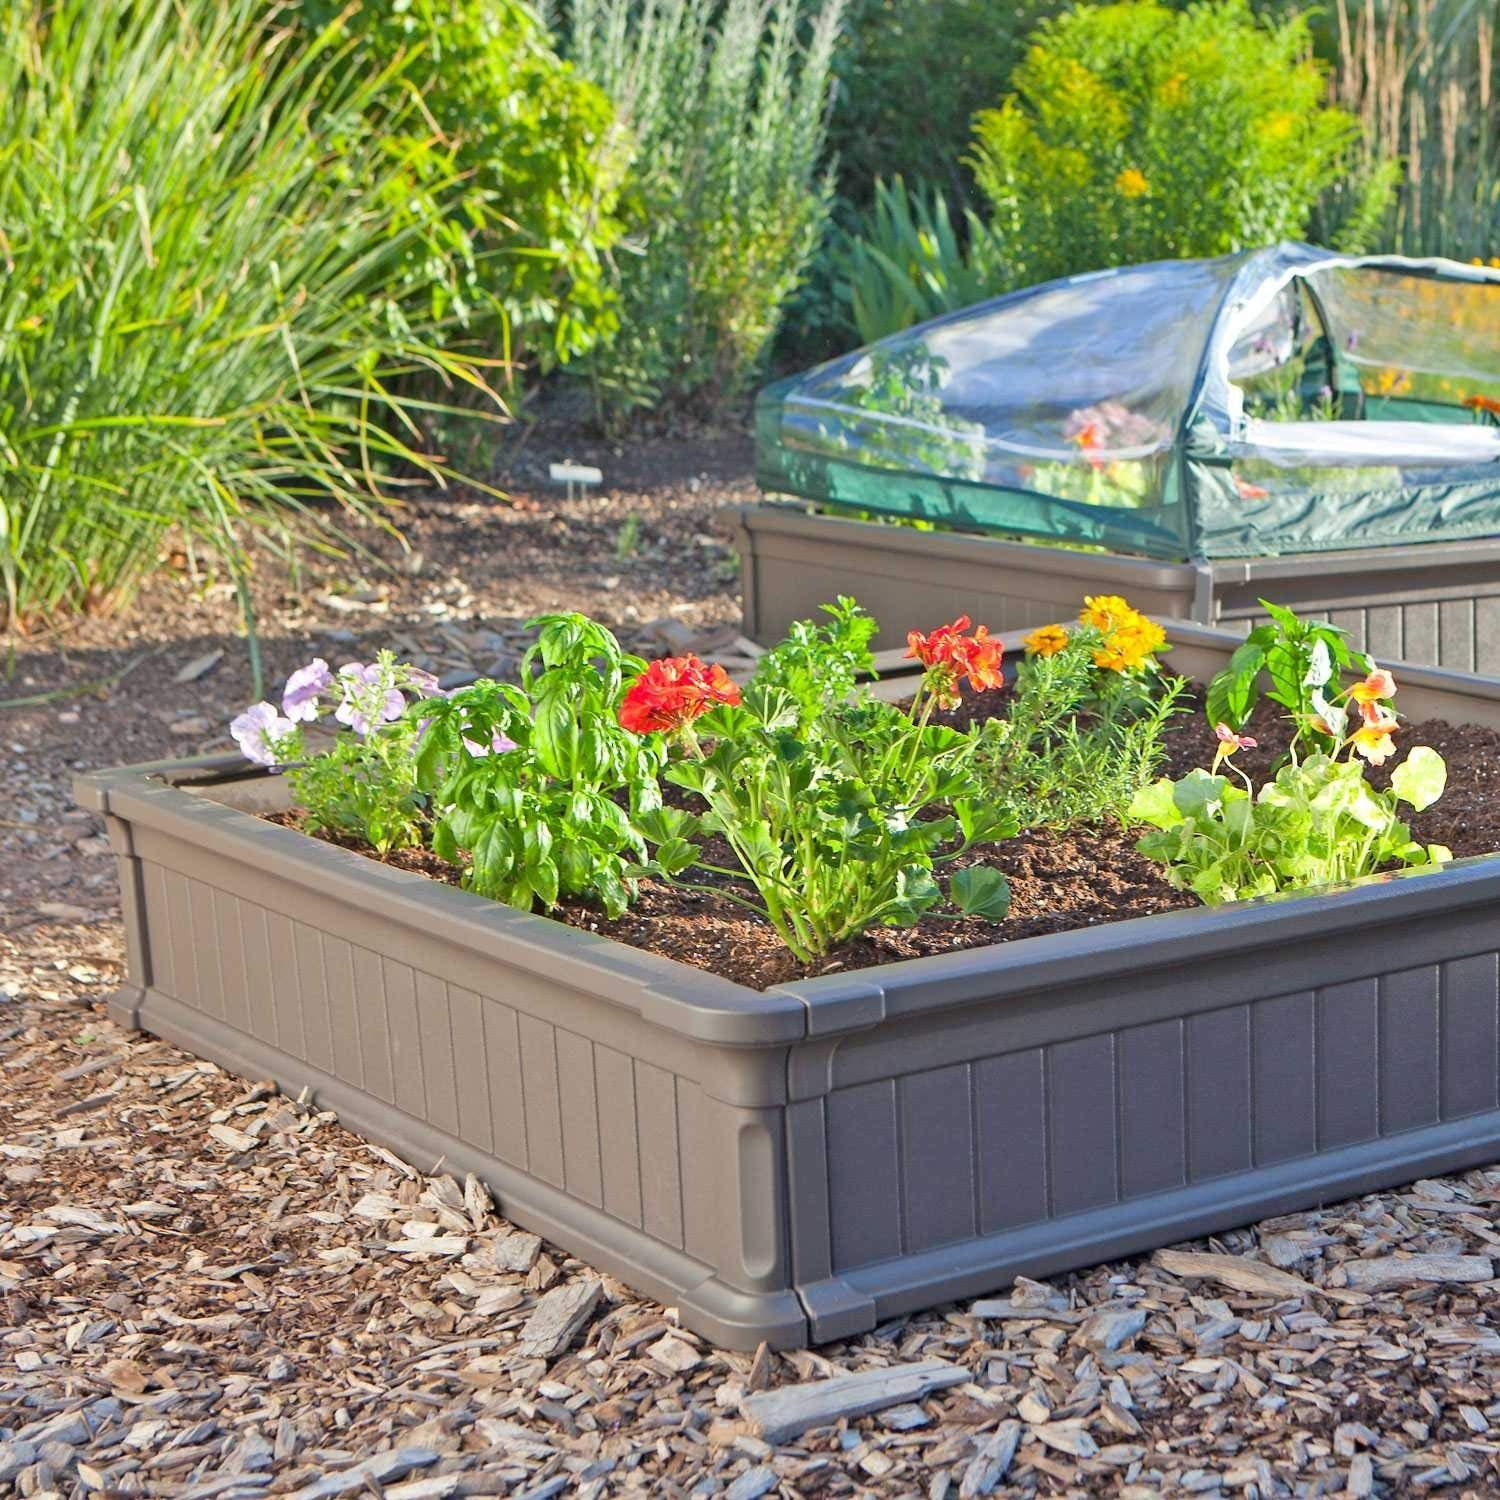 Lifetime 60065 Raised Garden Bed 4 By 4 Feet 1 Bed Plant